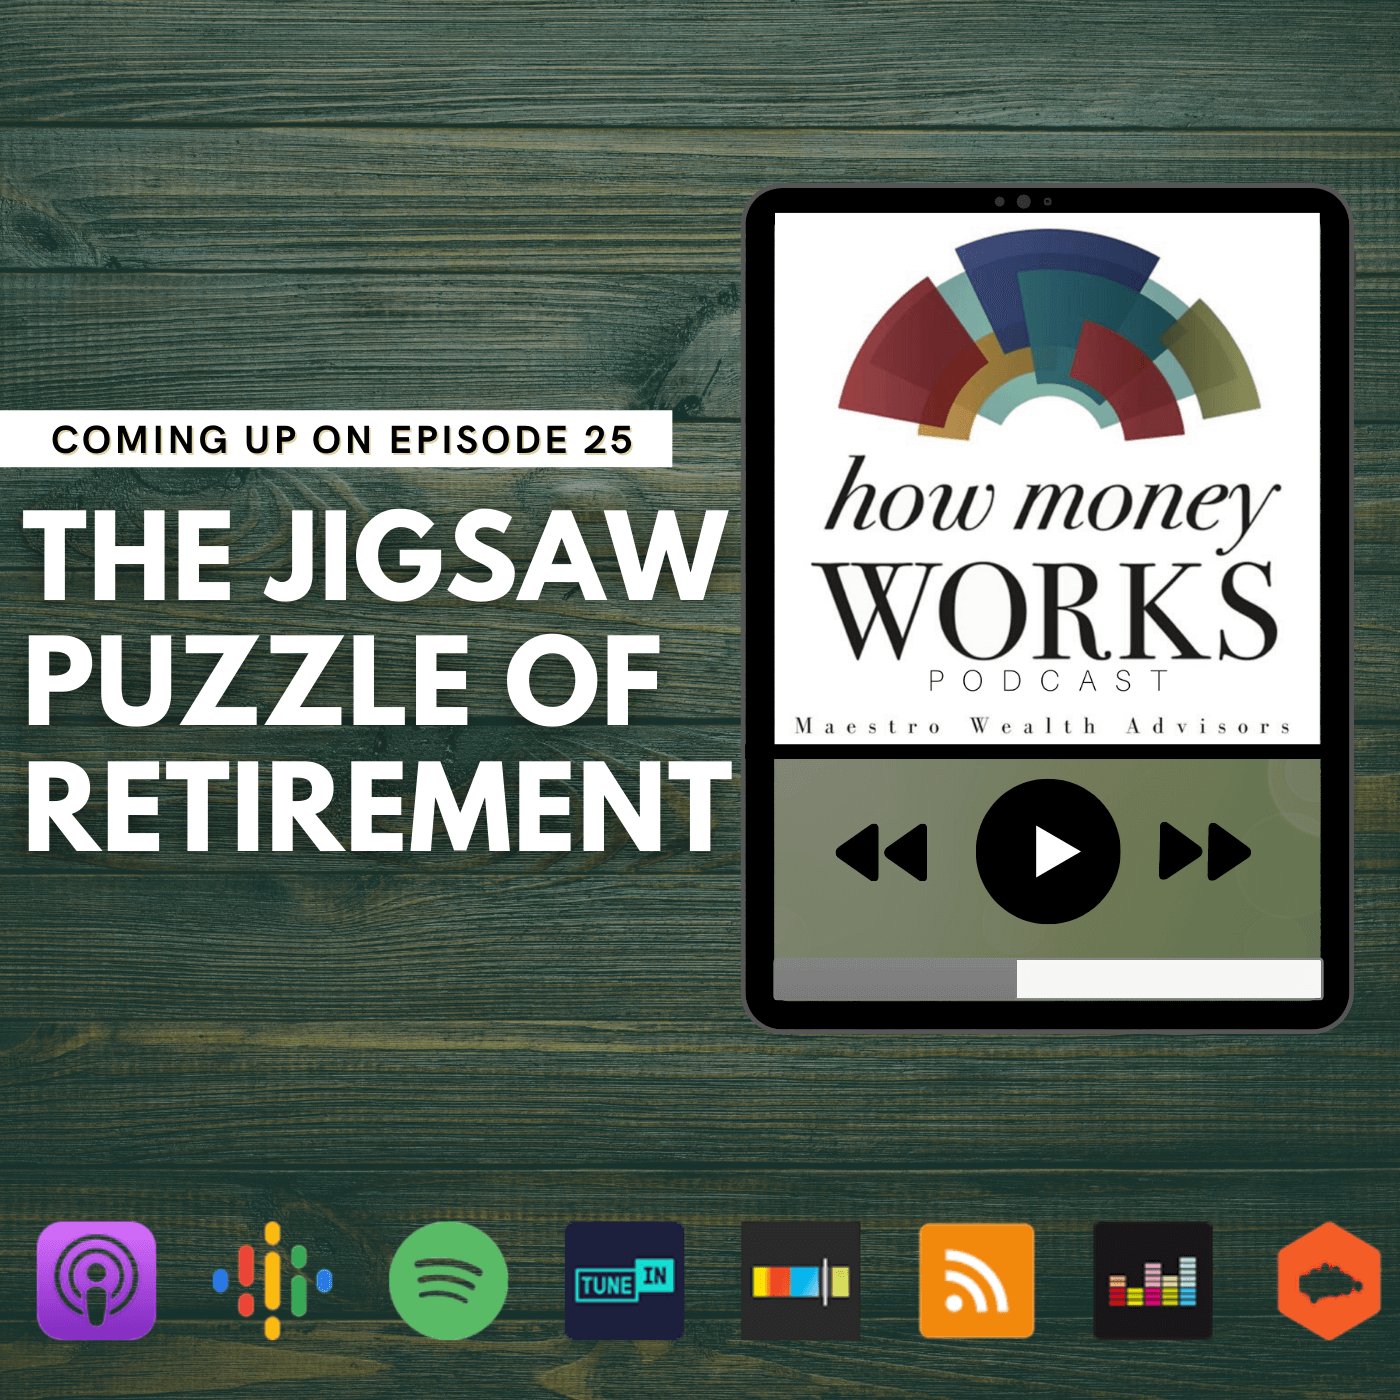 The Jigsaw Puzzle of Retirement